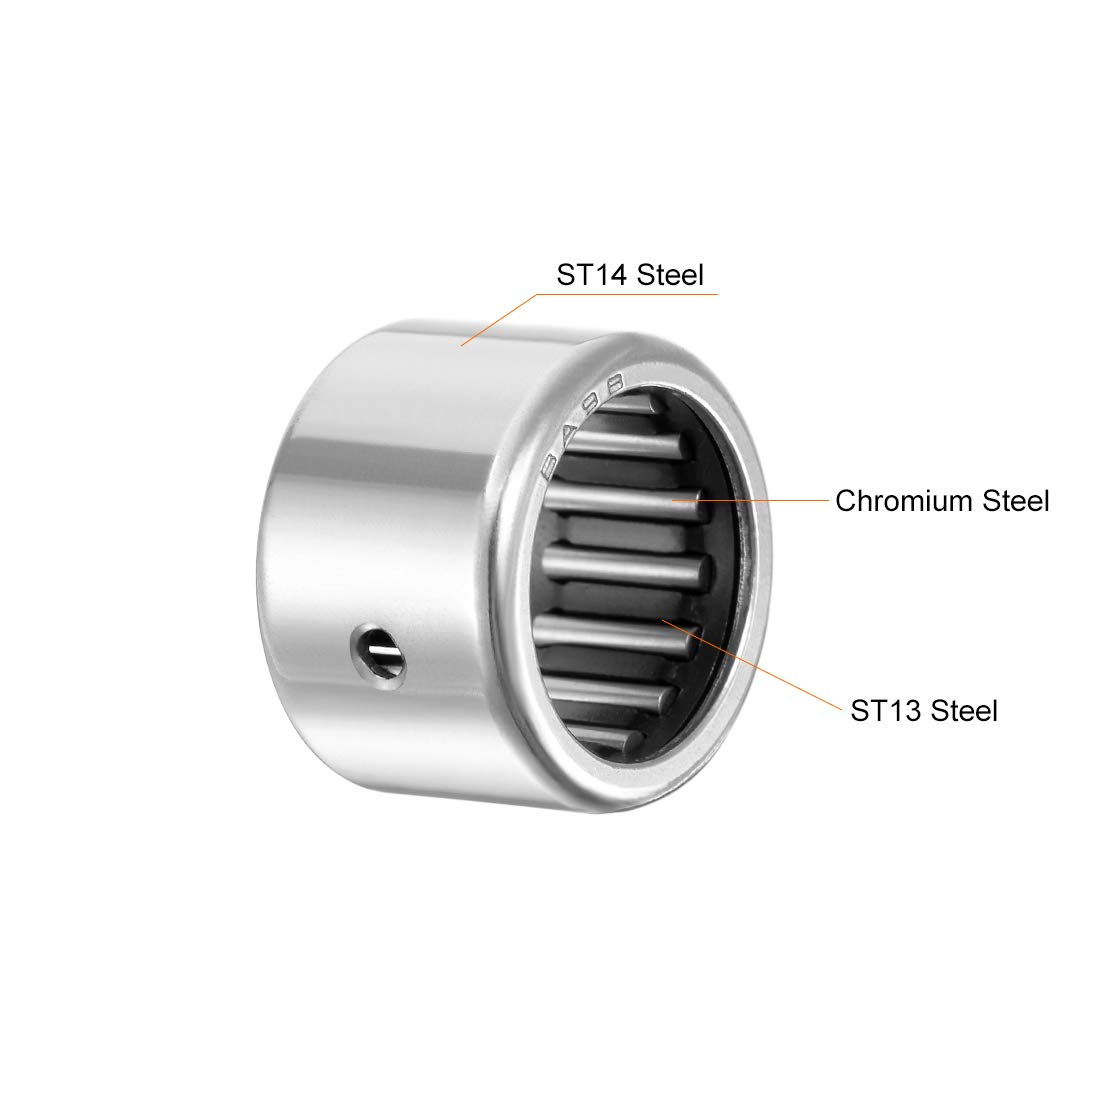 uxcell SCE812 Needle Roller Bearings 1//2-inch Bore 11//16-inch OD 3//4-inch Width Chrome Steel Open End